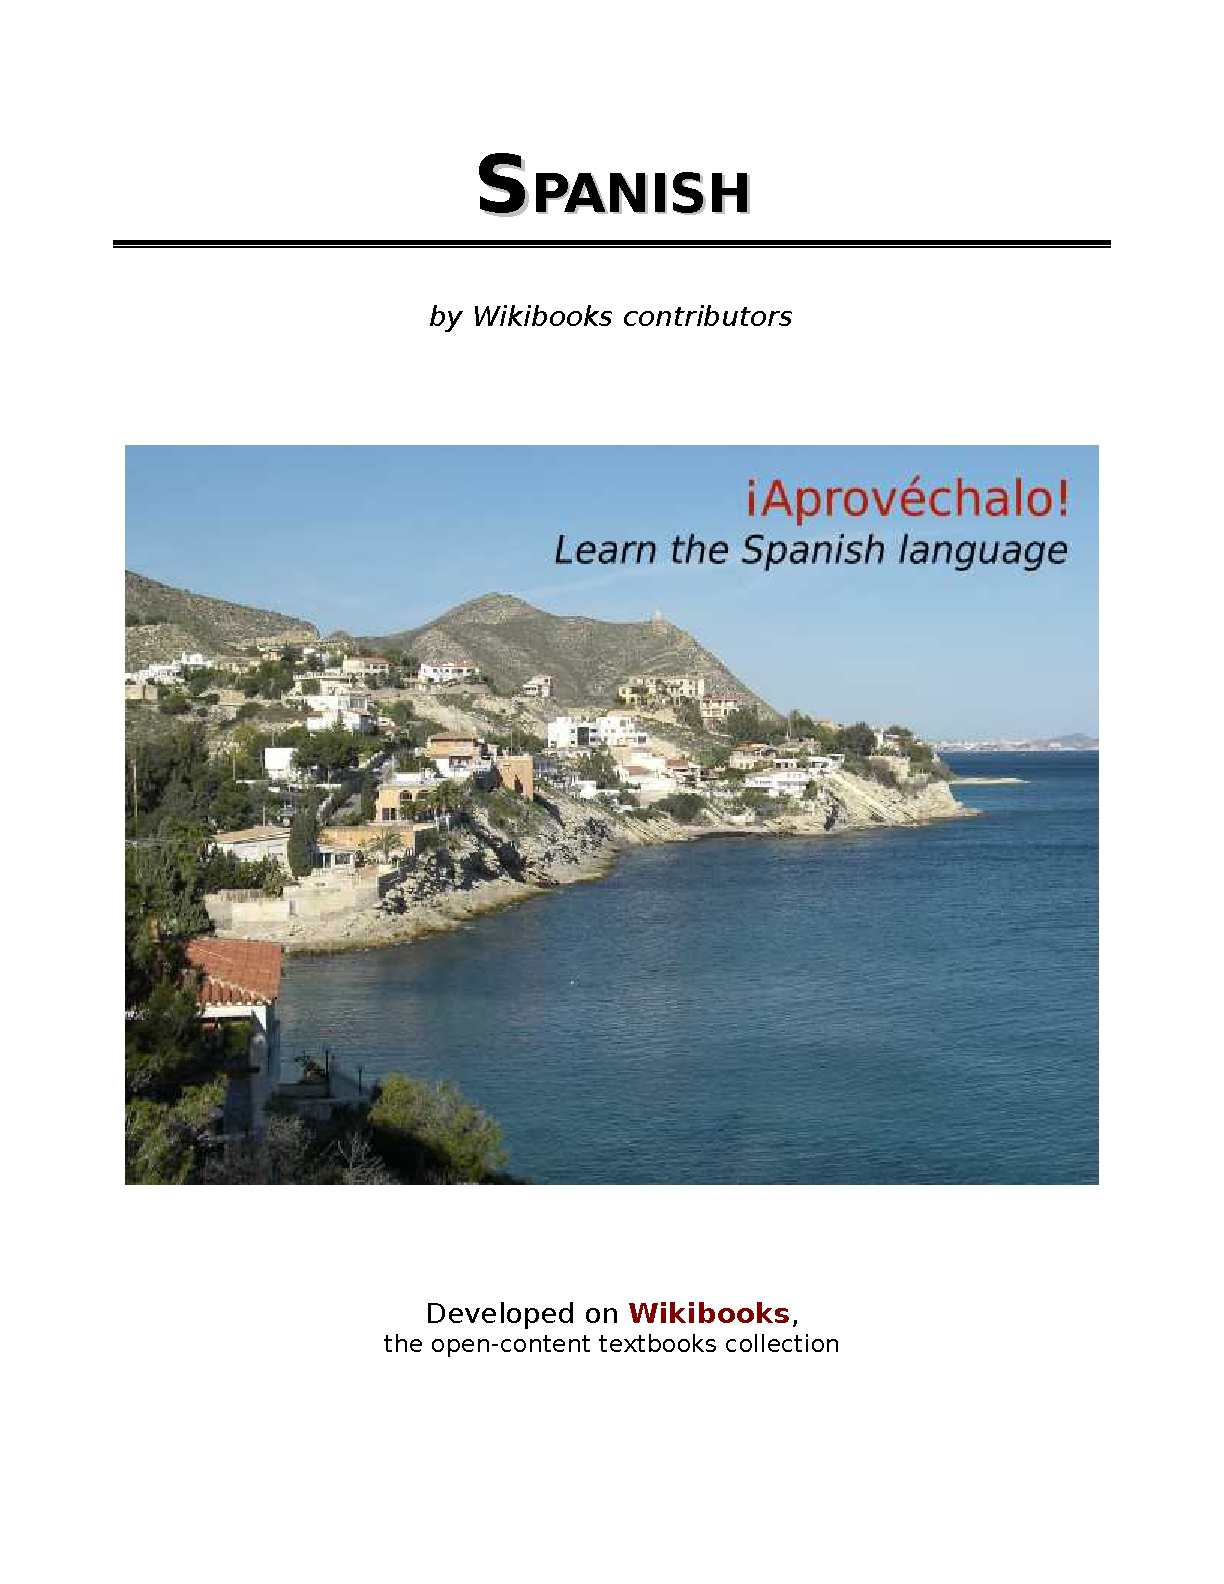 Learning Spanish - WikiBooks